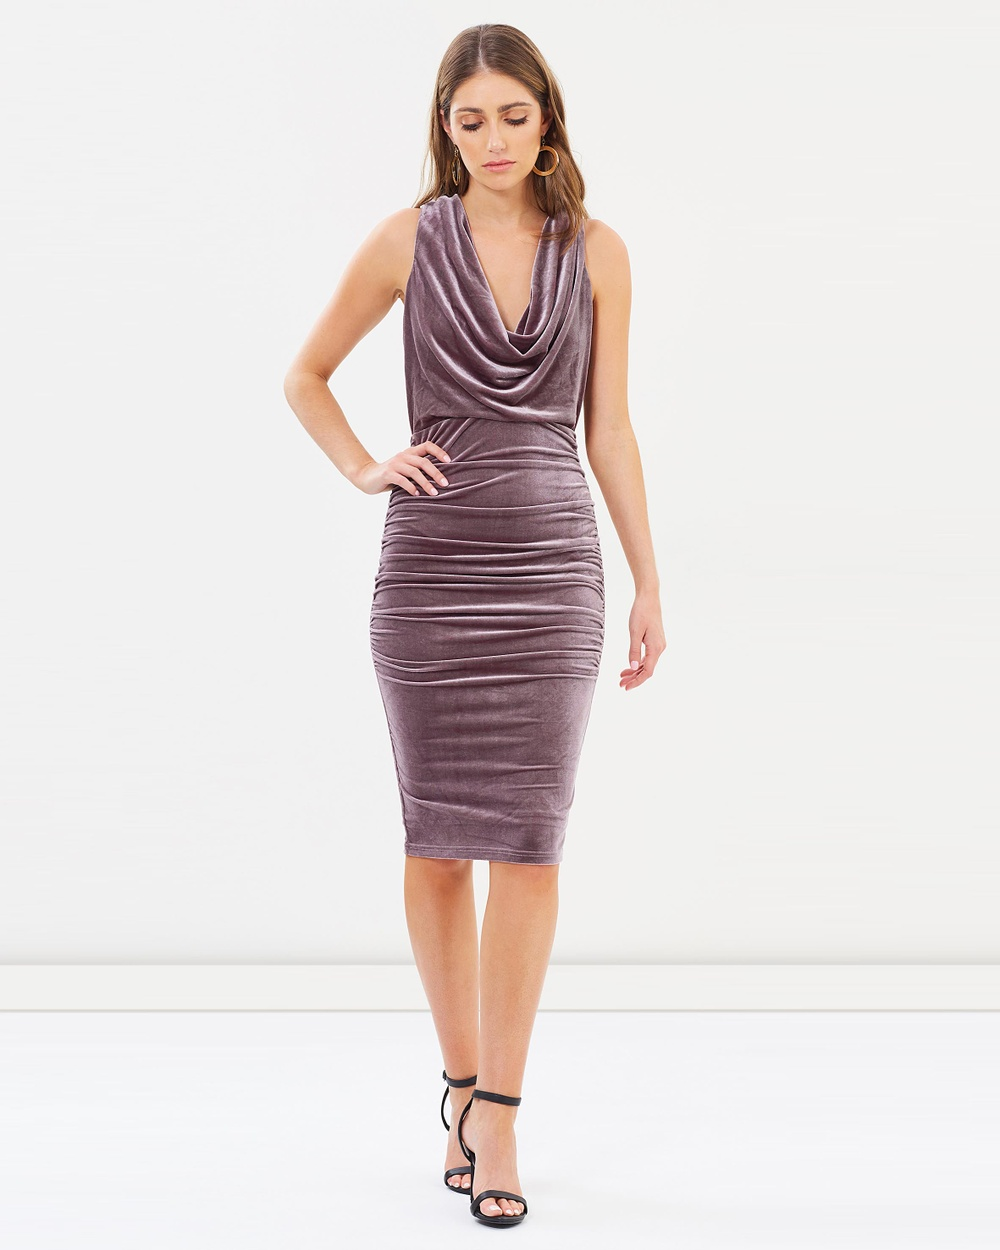 Fresh Soul Reputation Dress Bodycon Dresses Mauve Reputation Dress